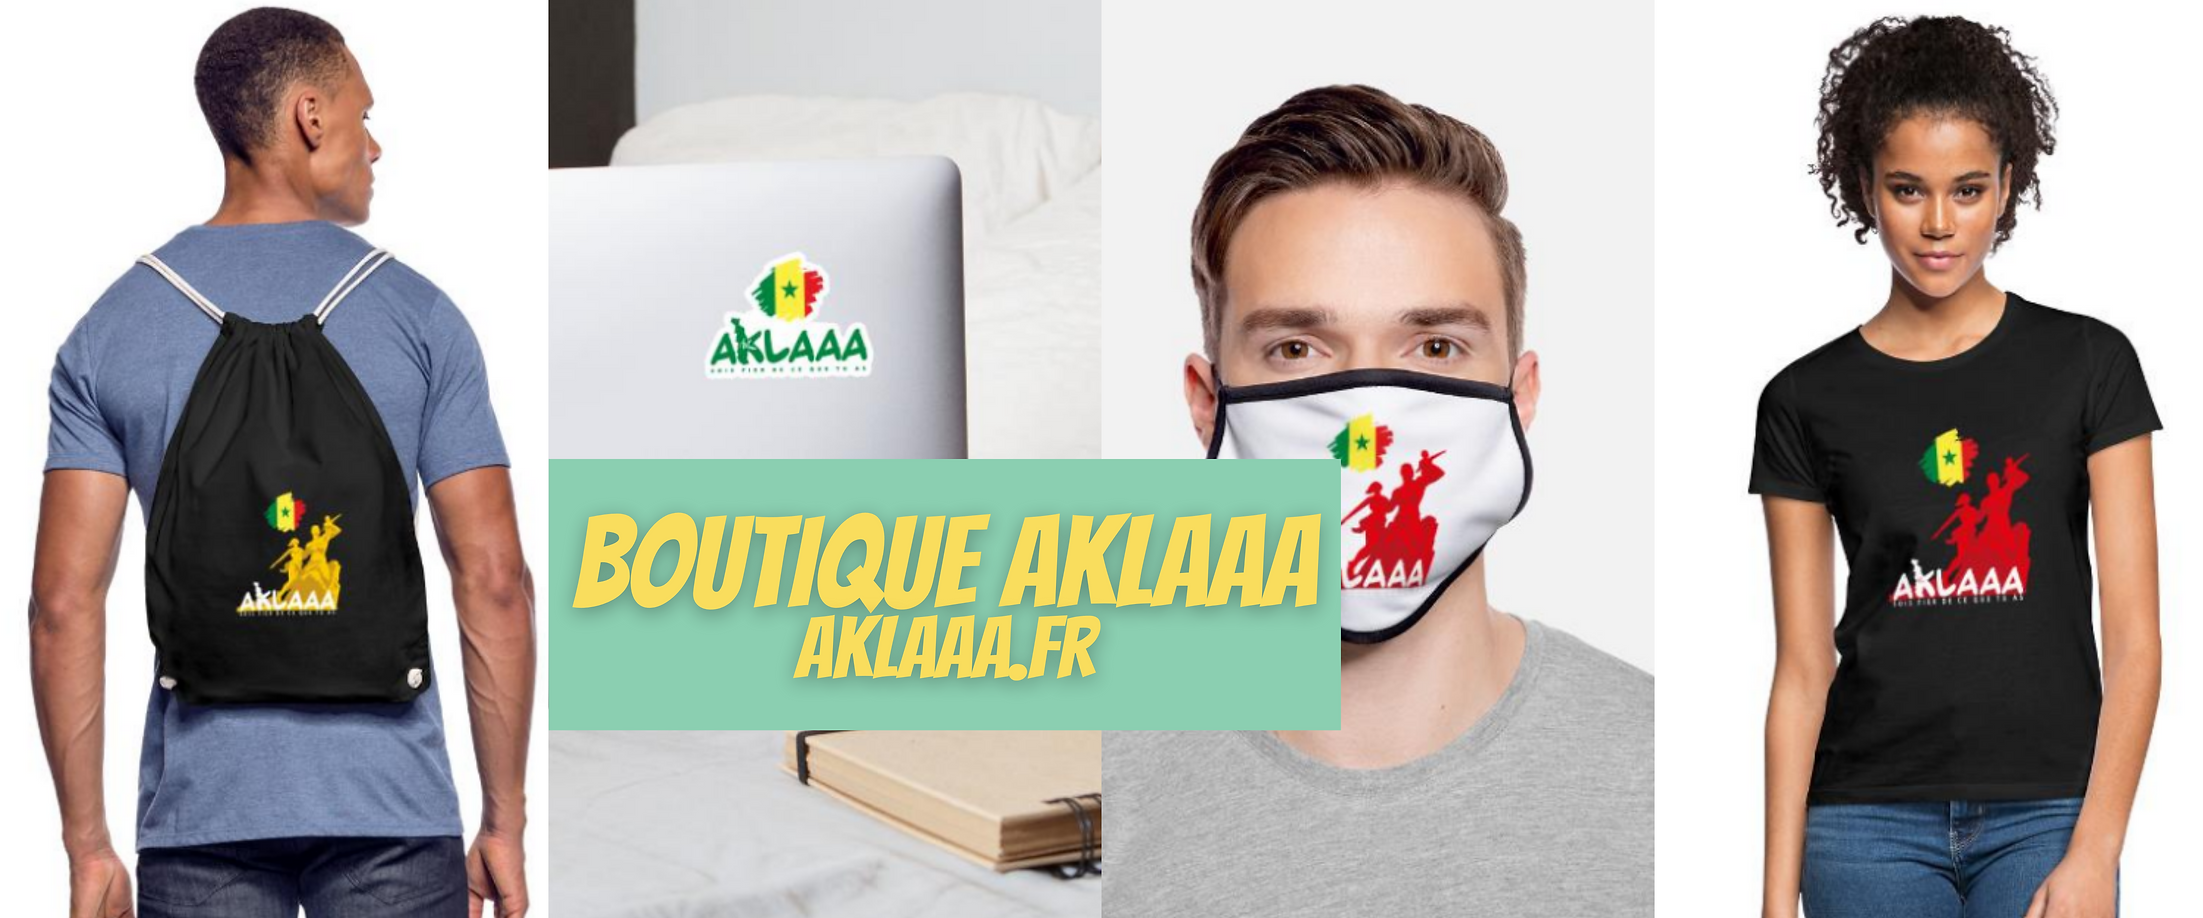 Aklaaa.boutique.png